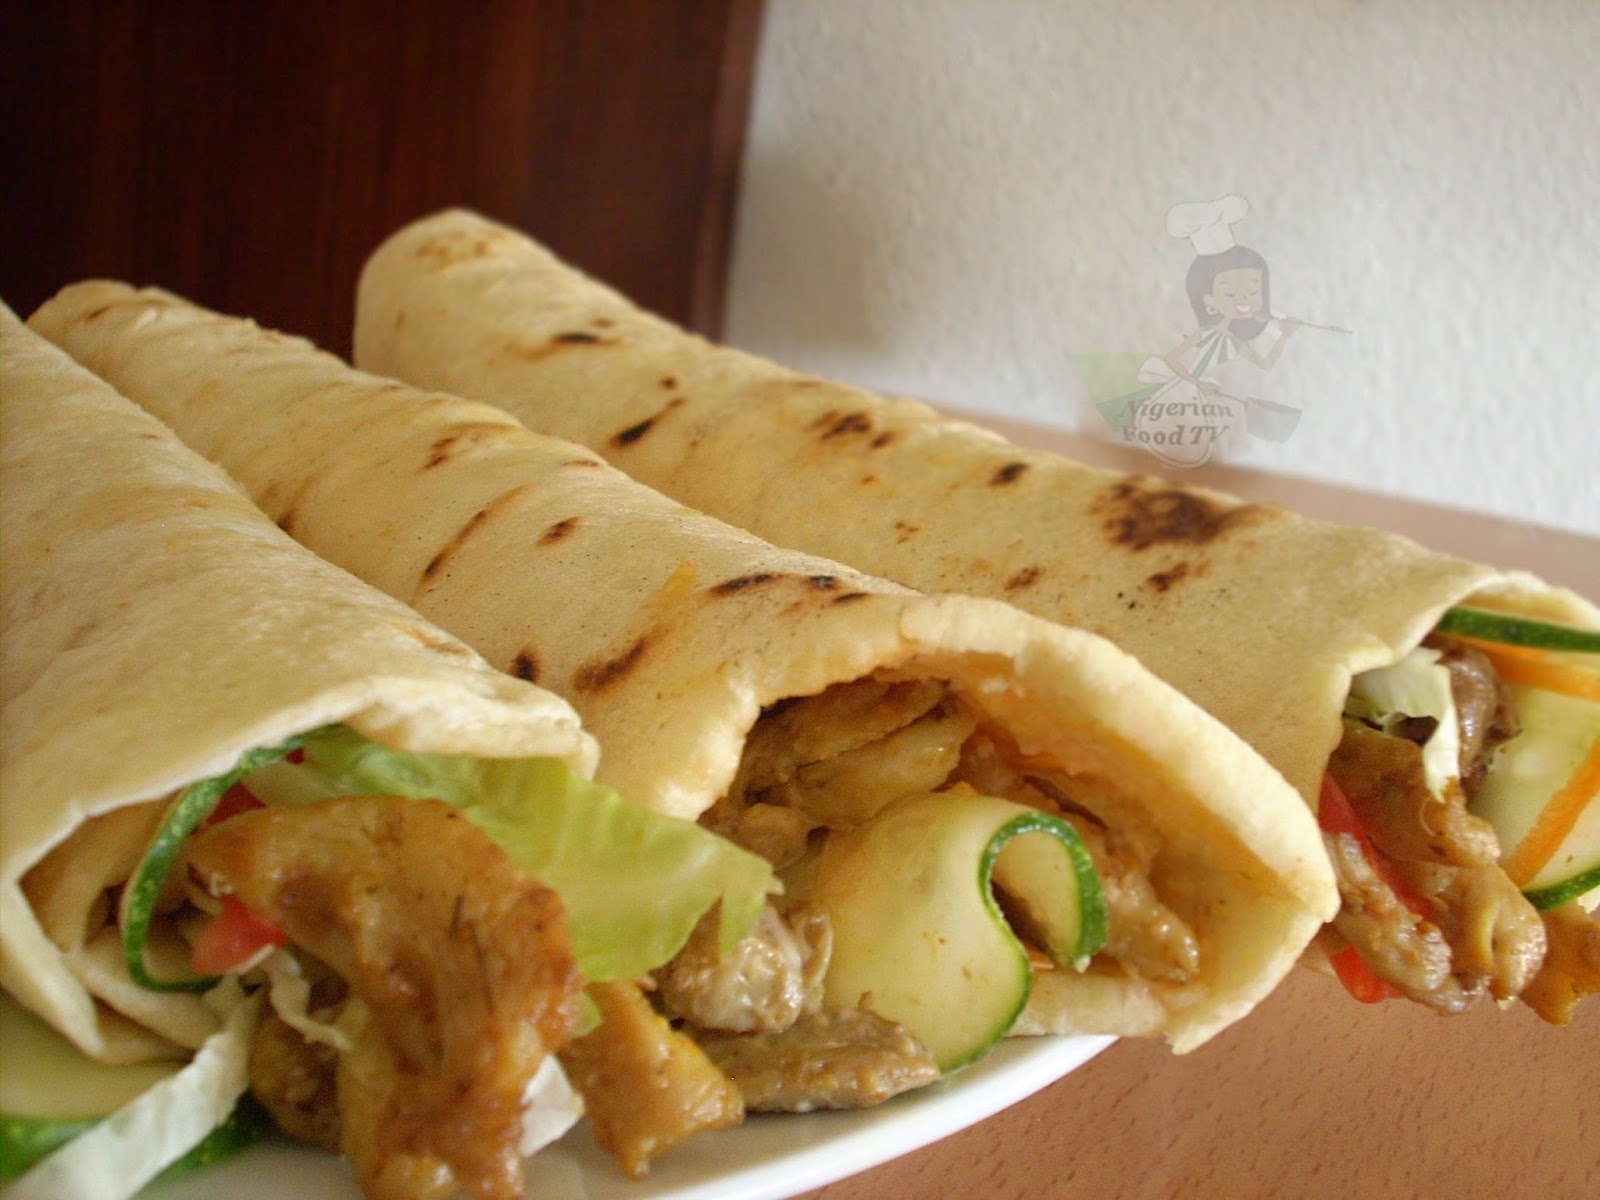 And your Homemade Nigerian Chicken Shawarma is ready... Enjoy!